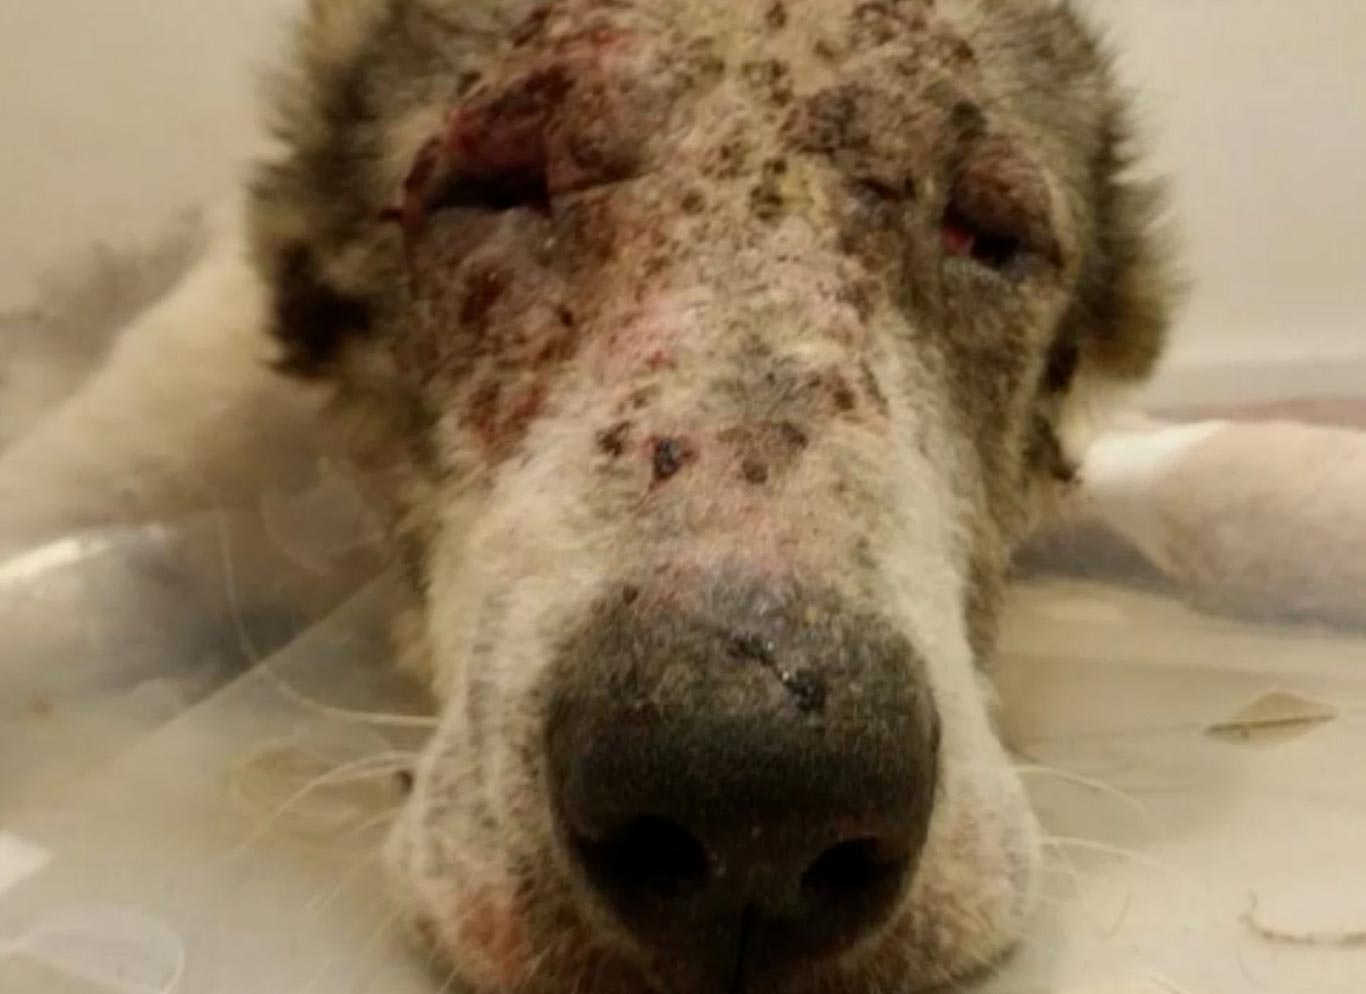 Poor Willy was skeletal, covered with mange and so weak he could barely stand... 3